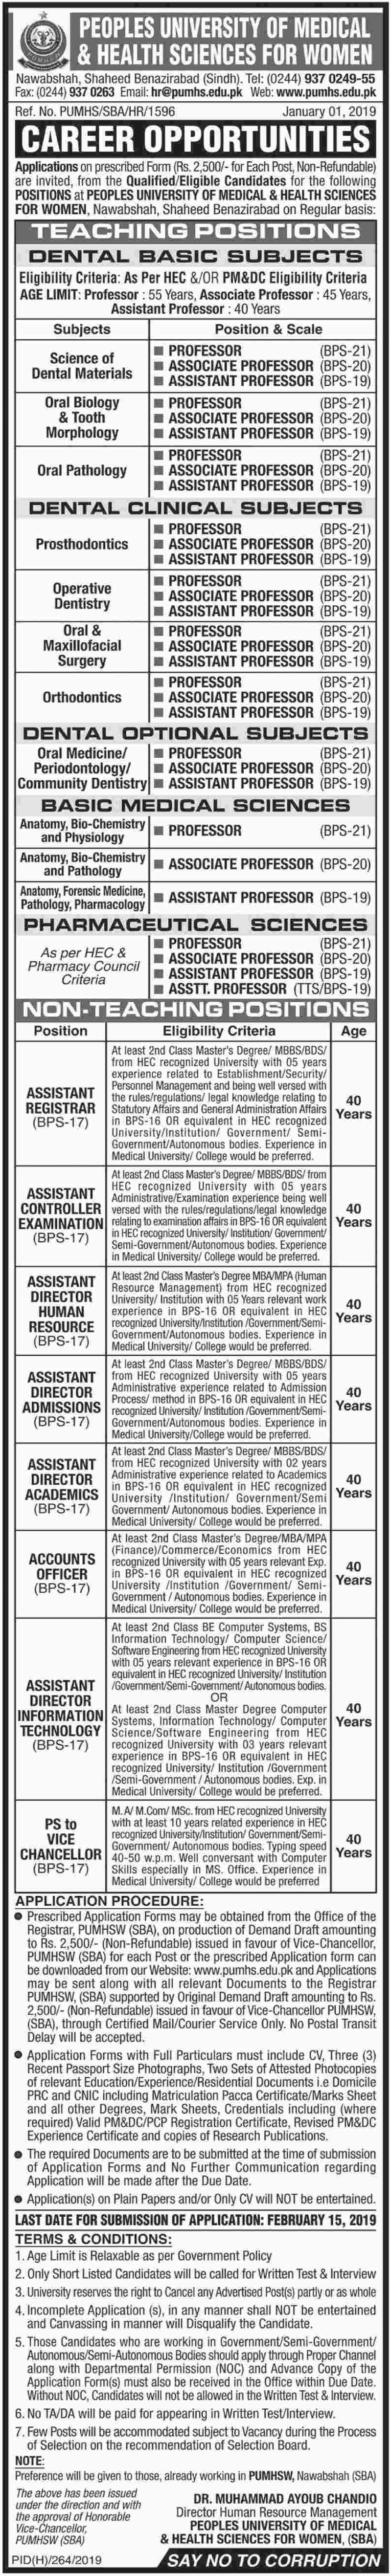 PUMHS Jobs 2019 Peoples University of Medical & Health Sciences for Women